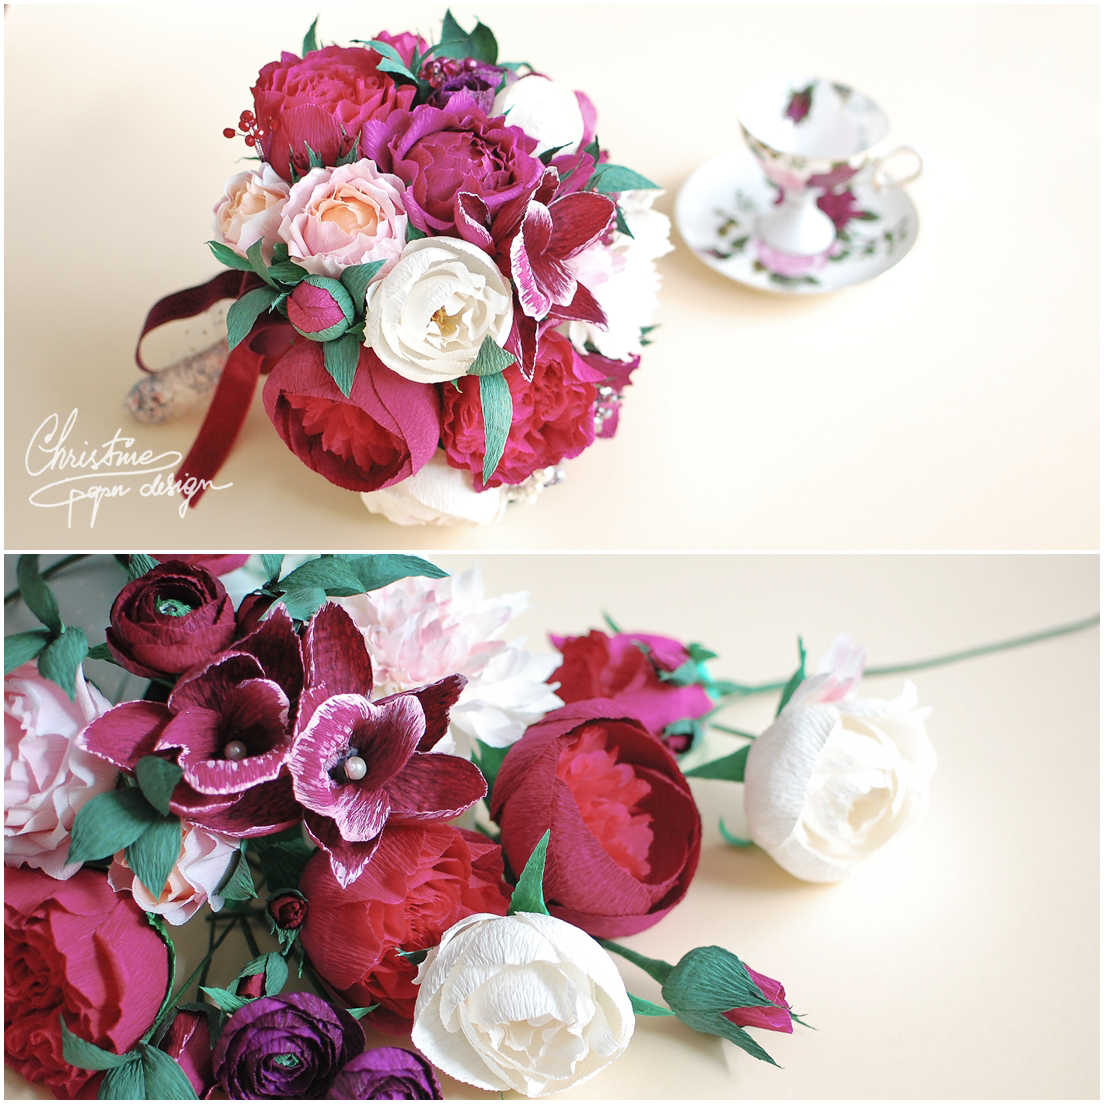 1 Christine paper design - red bridal bouquet